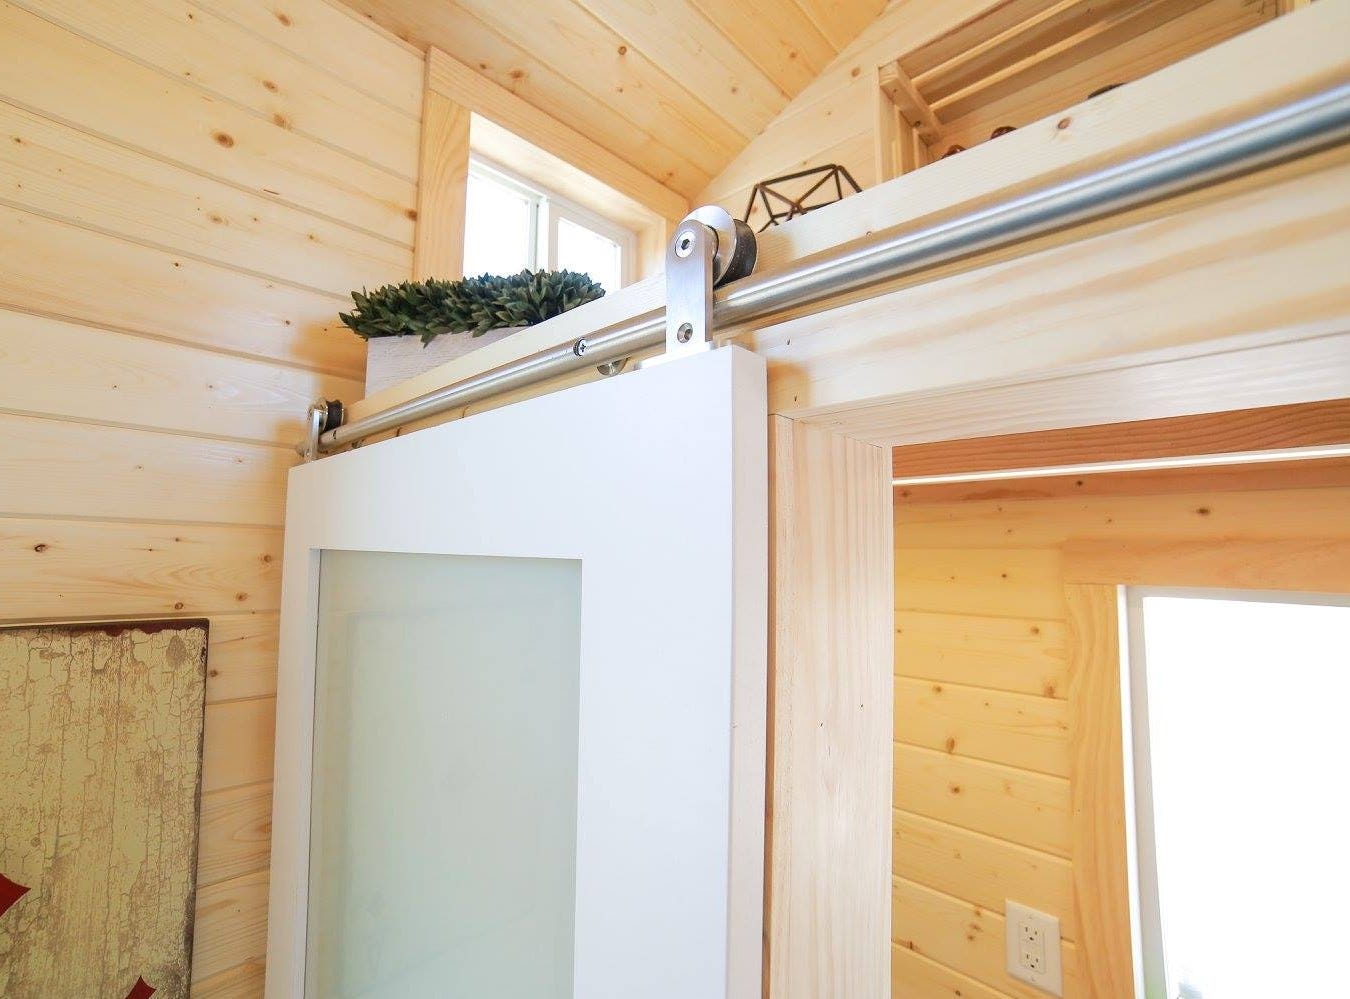 A look at the sliding doors inside a tiny home.